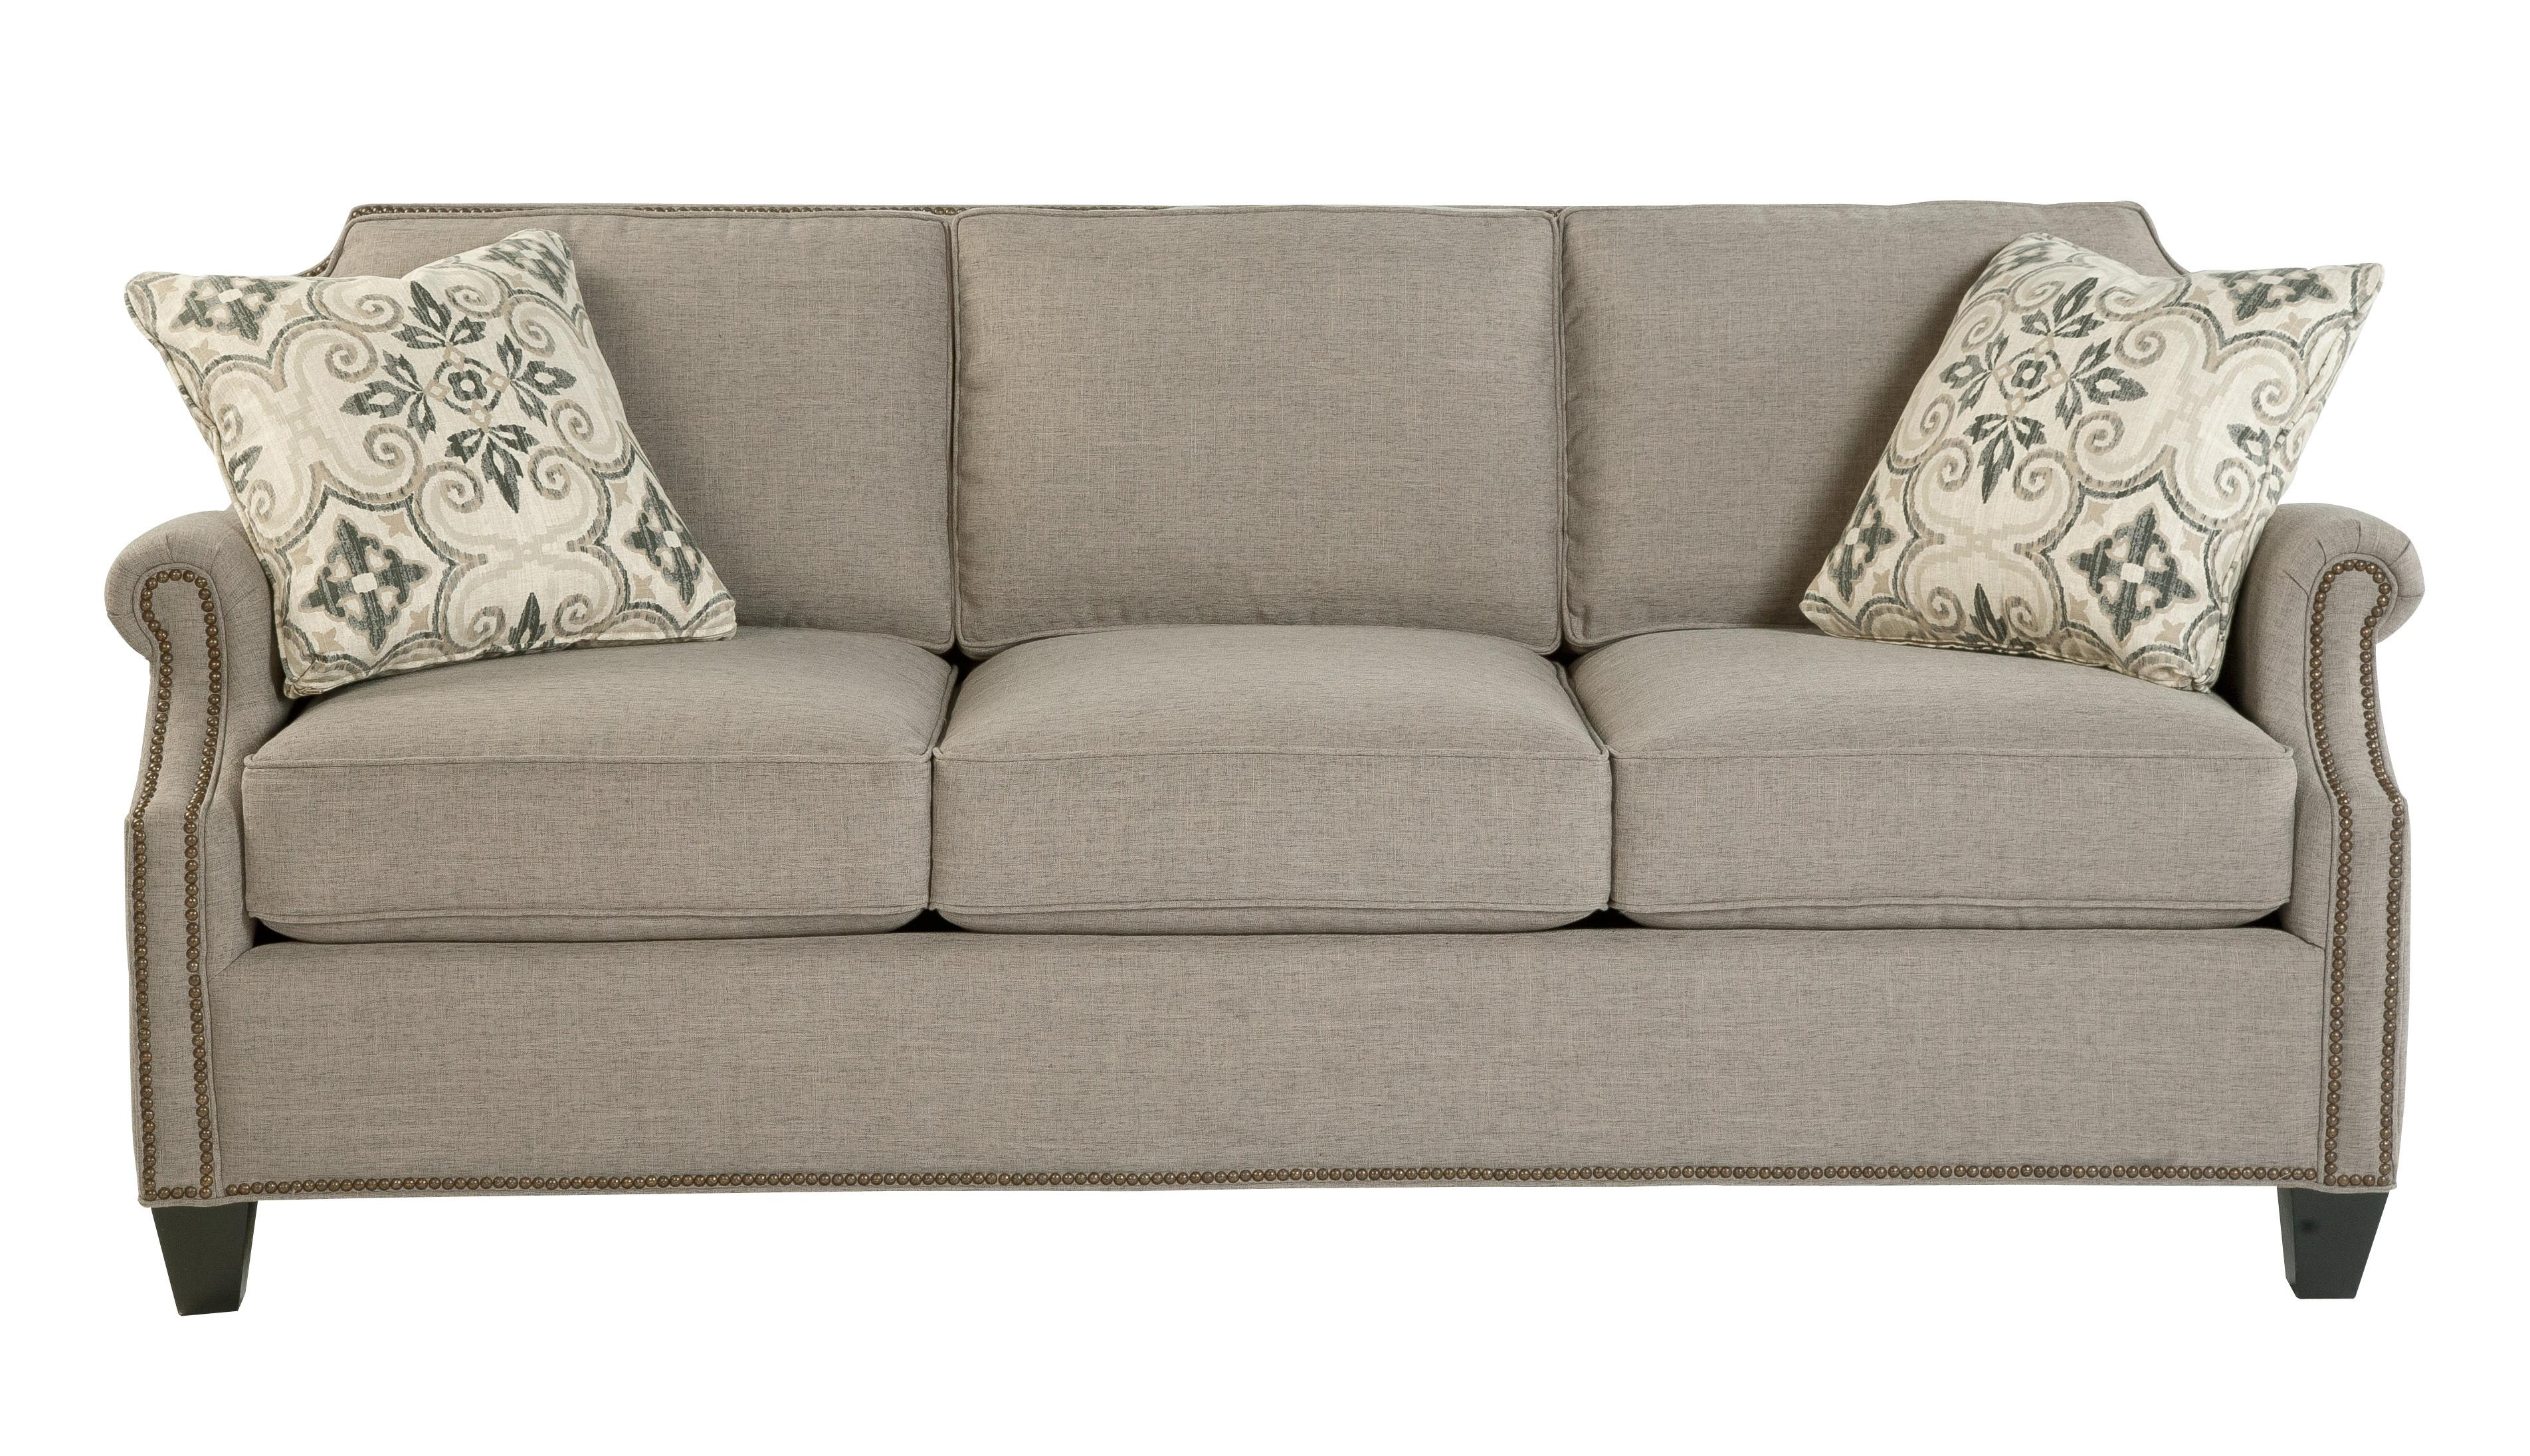 Craftmaster Reed Sofa Item Number 938350 Fontana 41